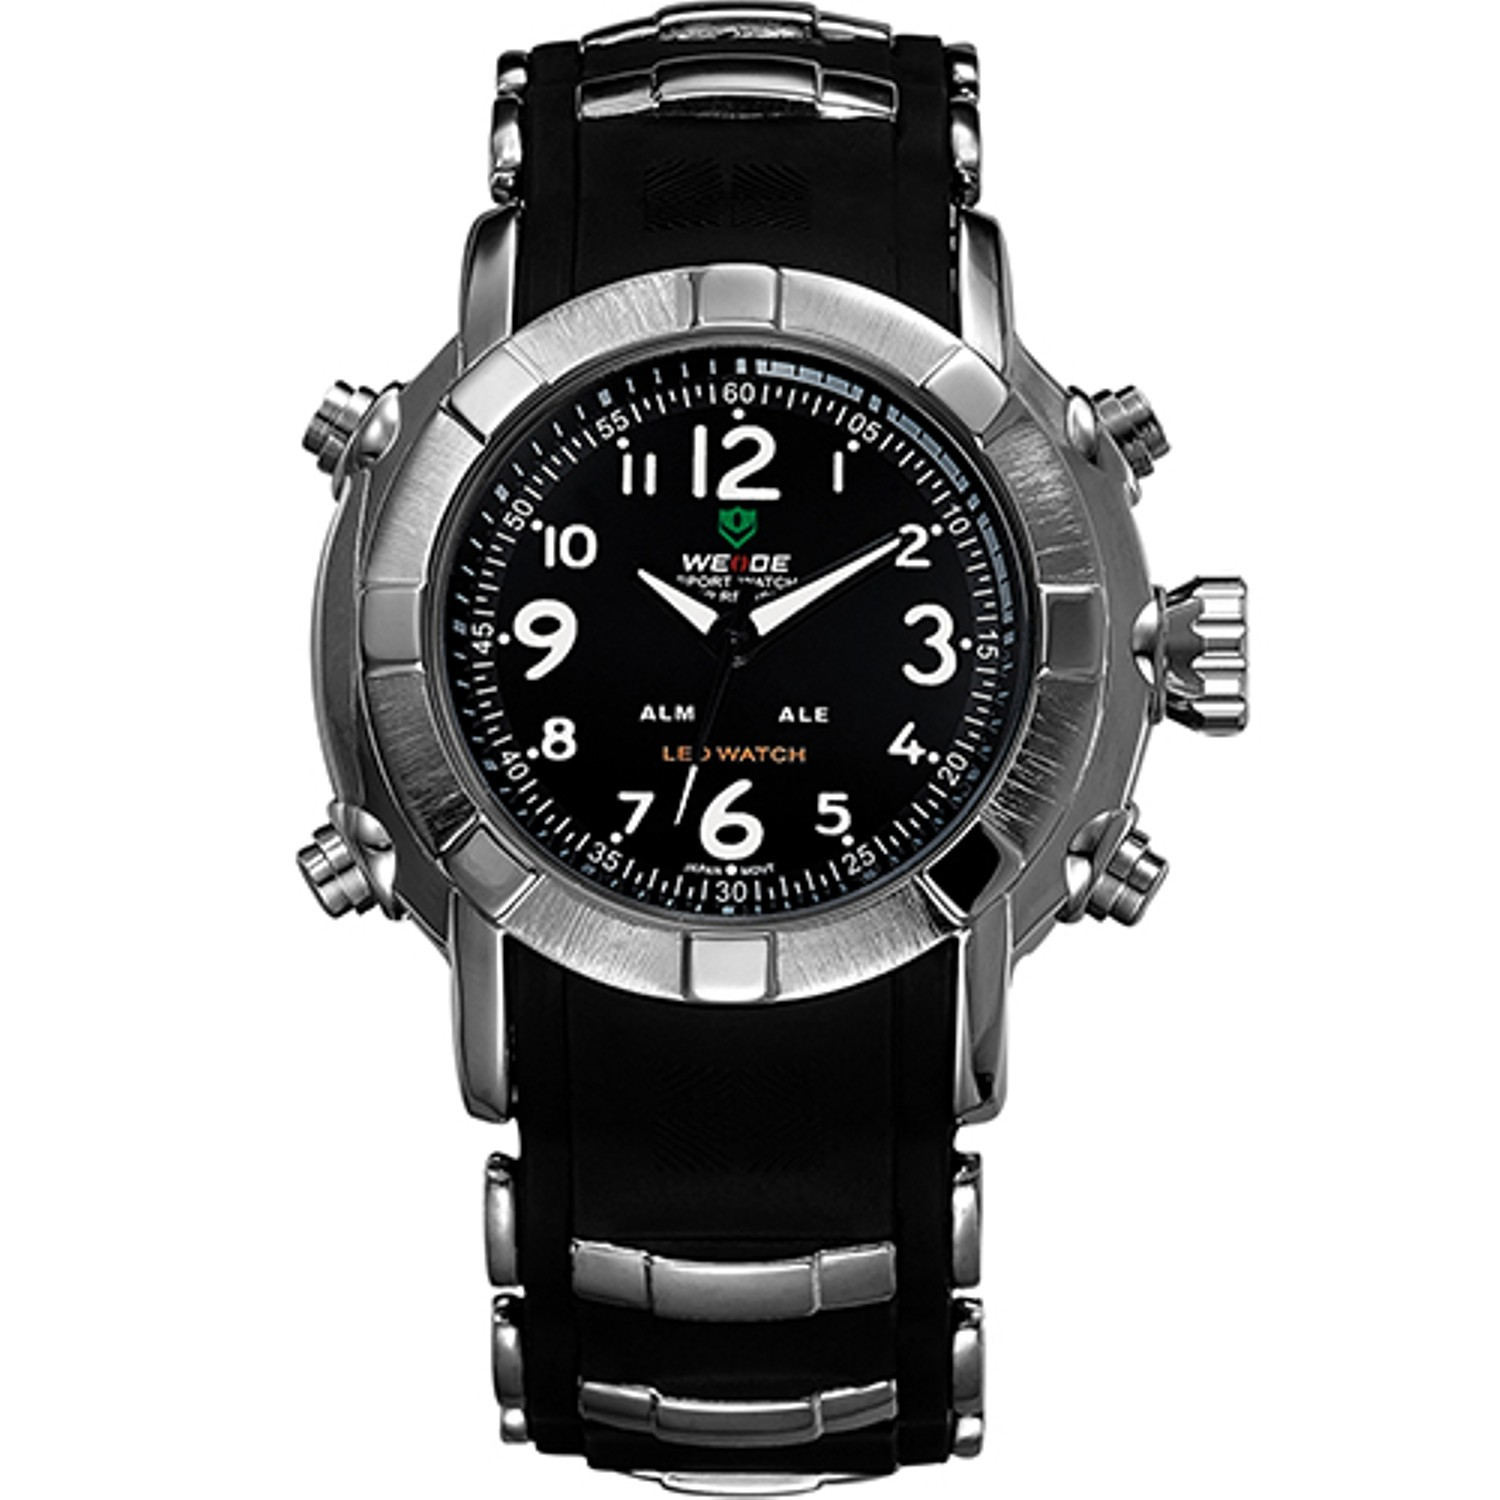 WEIDE-Men-Quartz-Digital-Watch-Silicone-Strap-Steel-Buckle-Japan-Movement-Relogio-LED-Military-Waterproof-Wristwatches_1500x1500_STRETCH_Black Dial.jpg